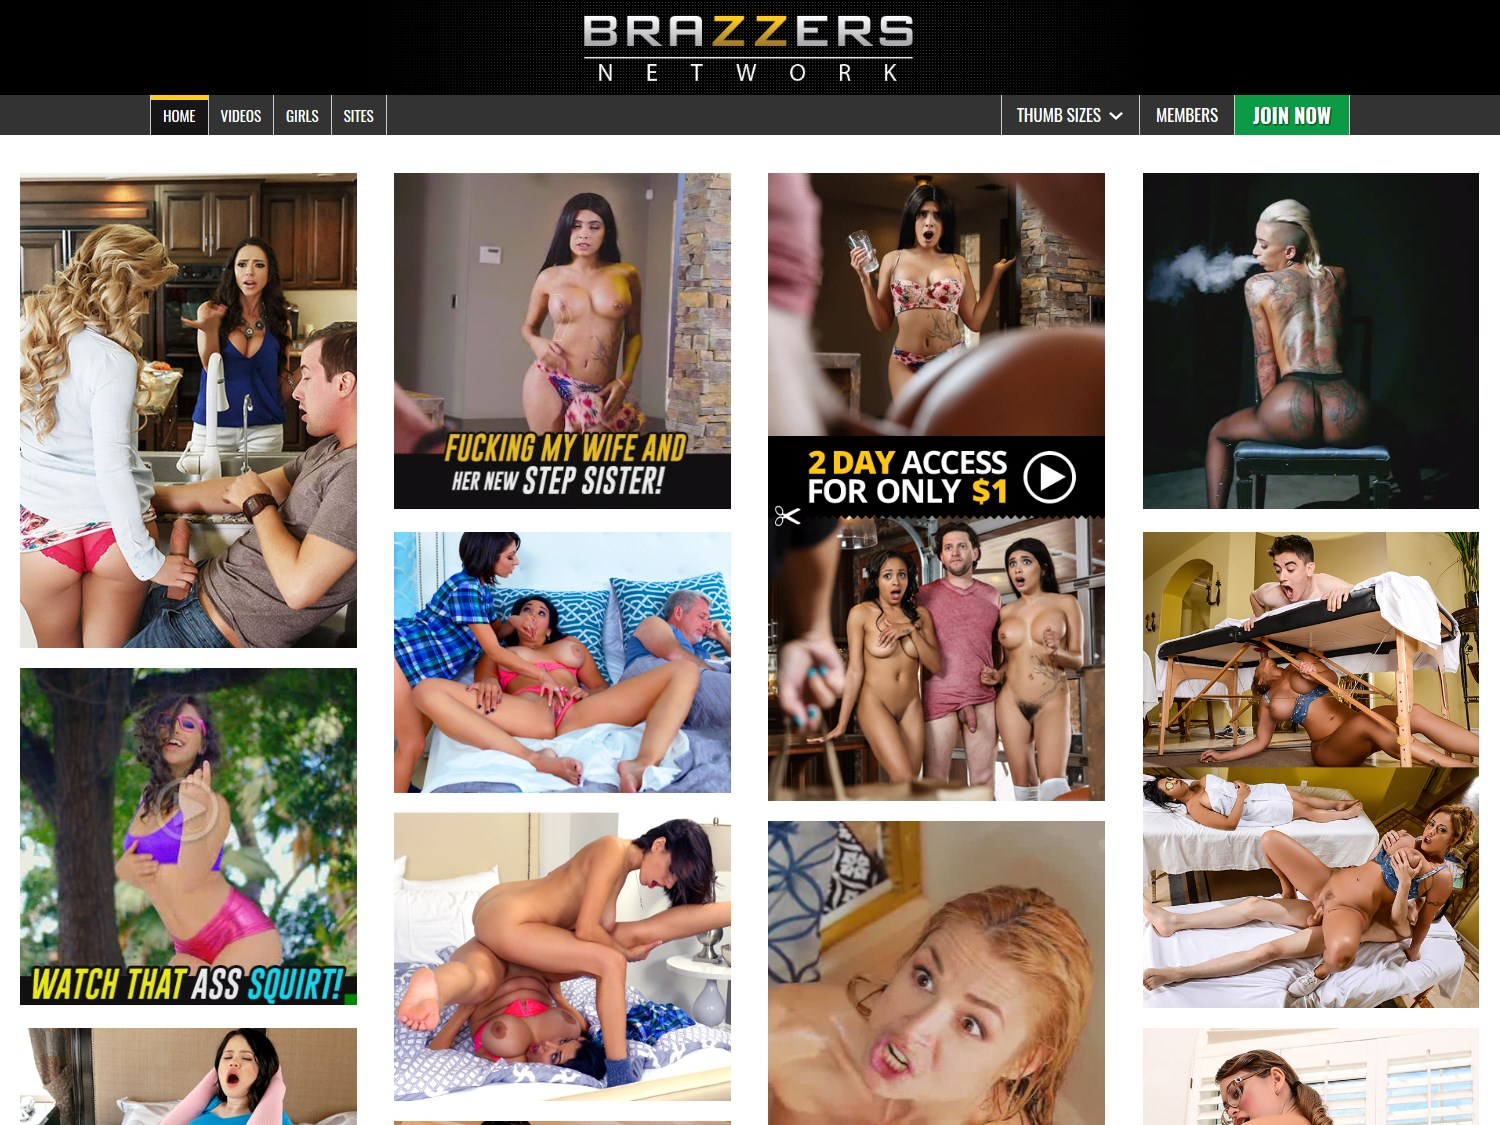 the brazzers network